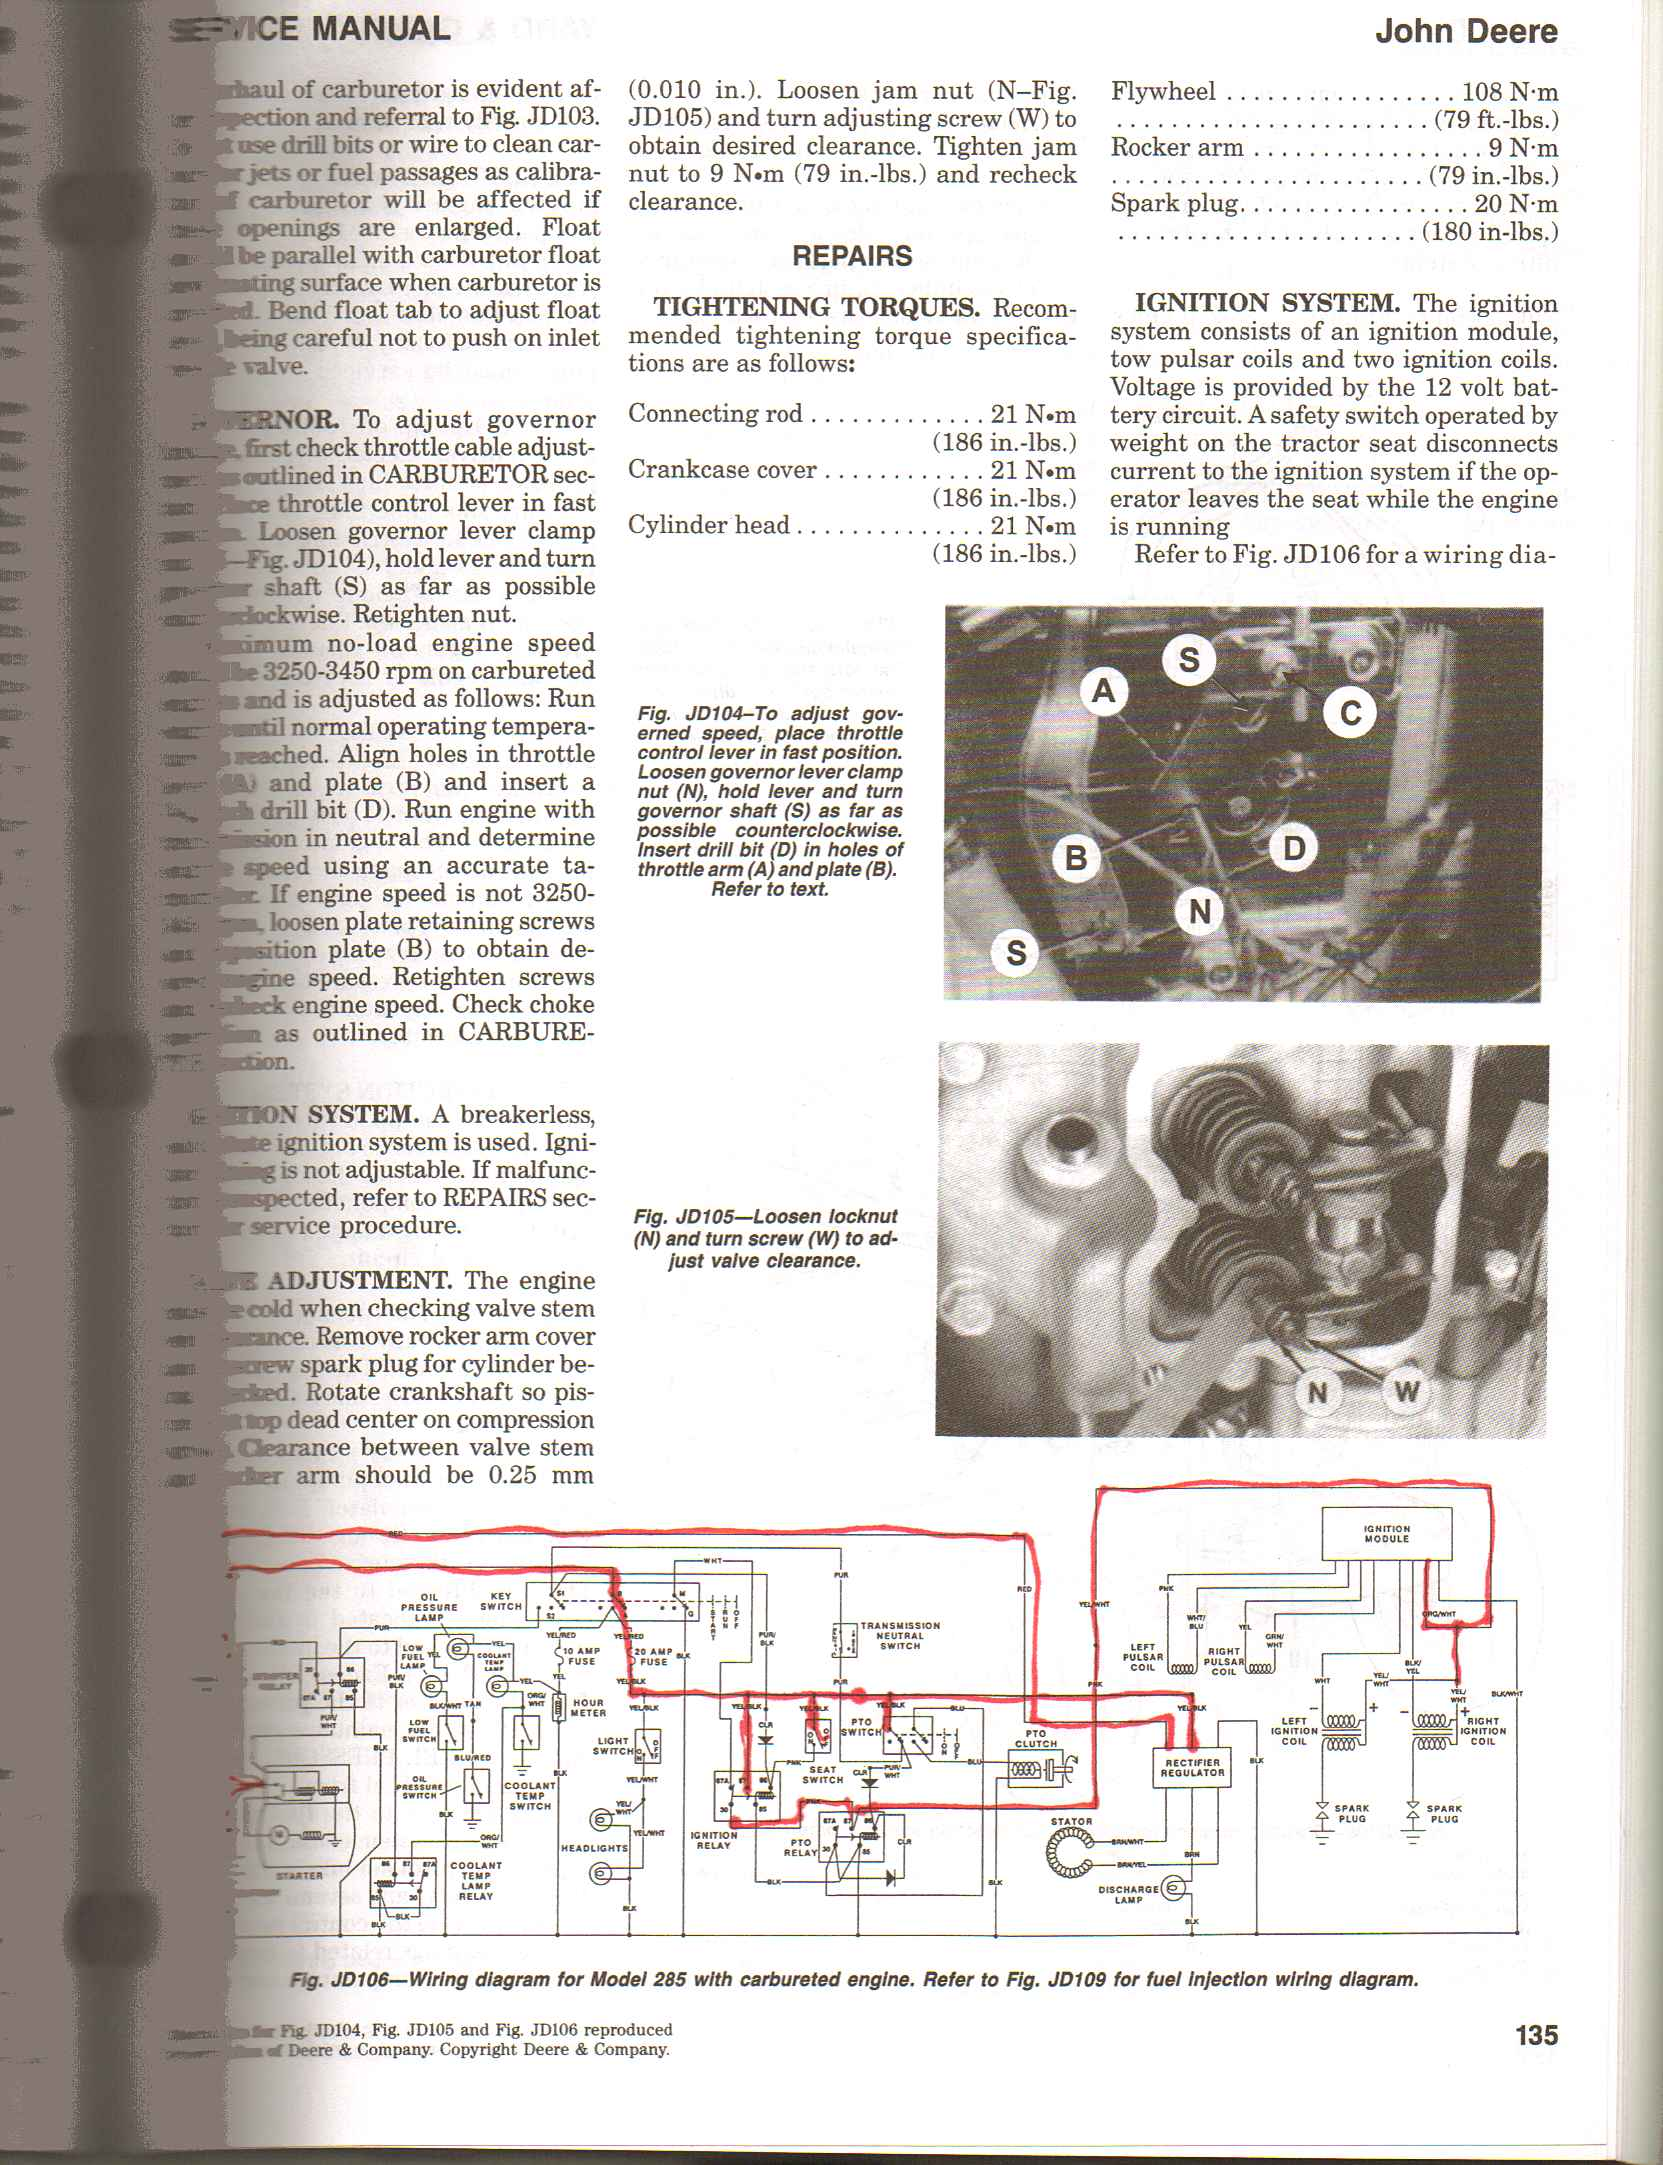 John Deere 185 Wiring Schematic Diagram And Schematics Preclinical Of Lawn Tractor Parts I Have A 285 Kawasaki V Twin 18 Hp Engine While Rh Justanswer